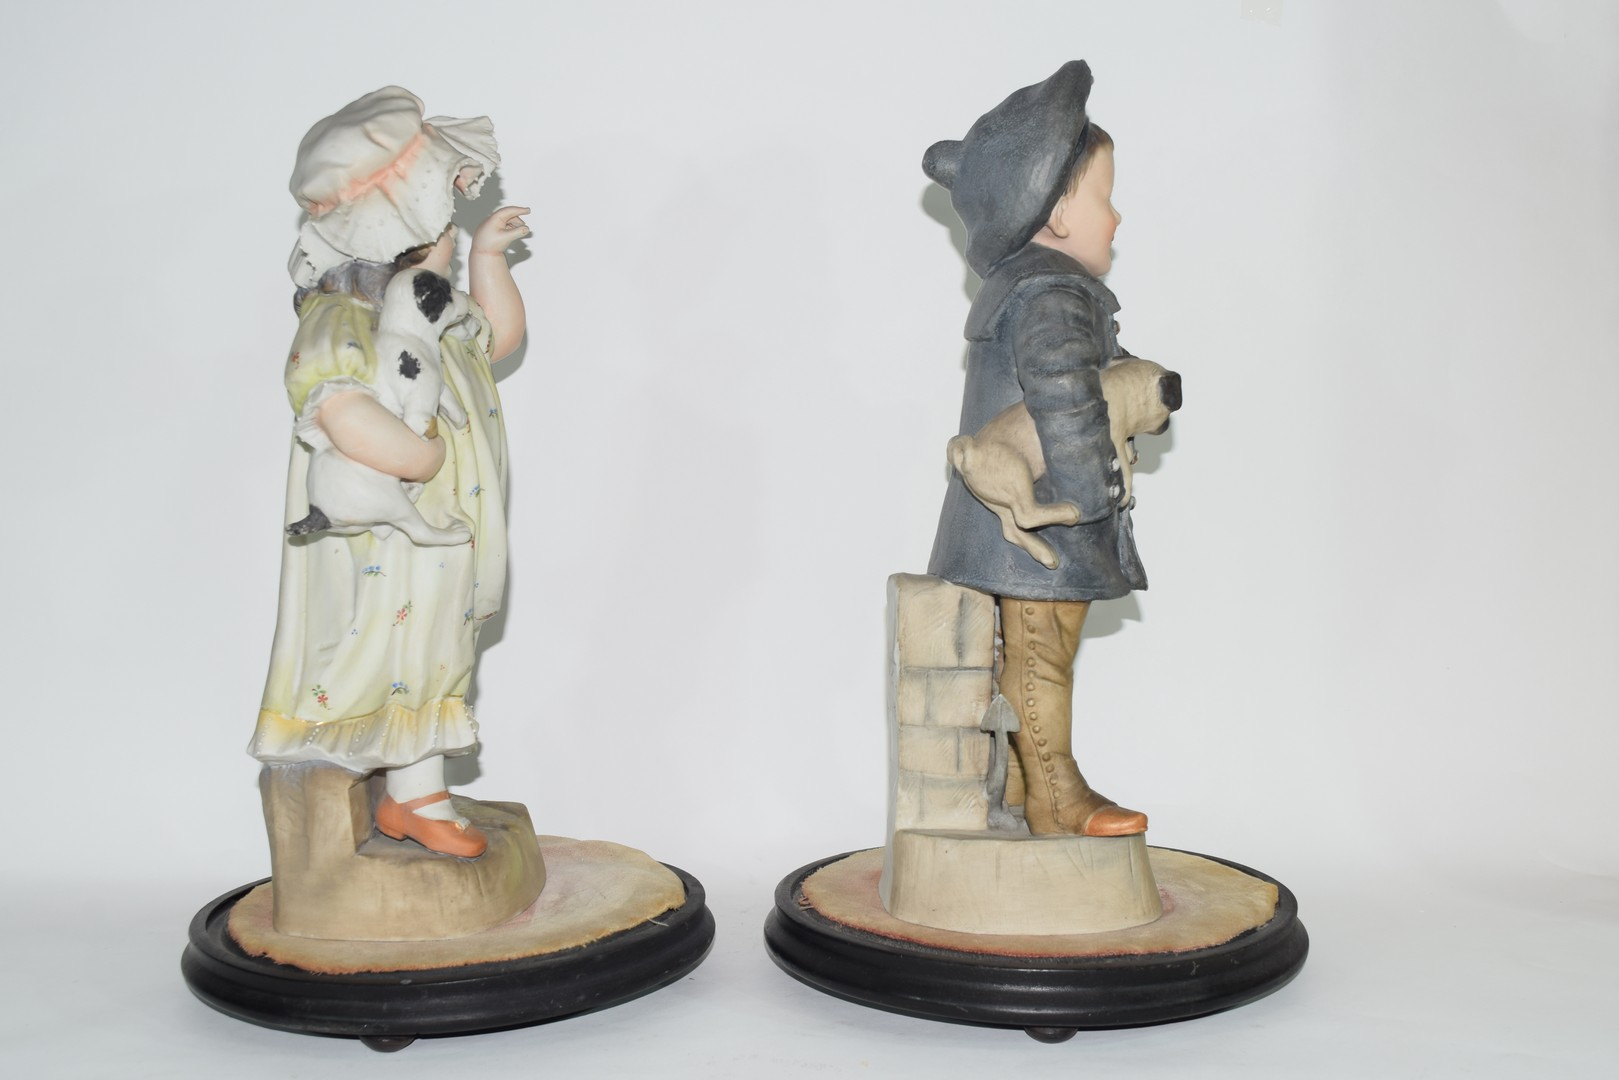 Pair of late 19th century Continental bisque figures of a boy and girl - Image 4 of 4